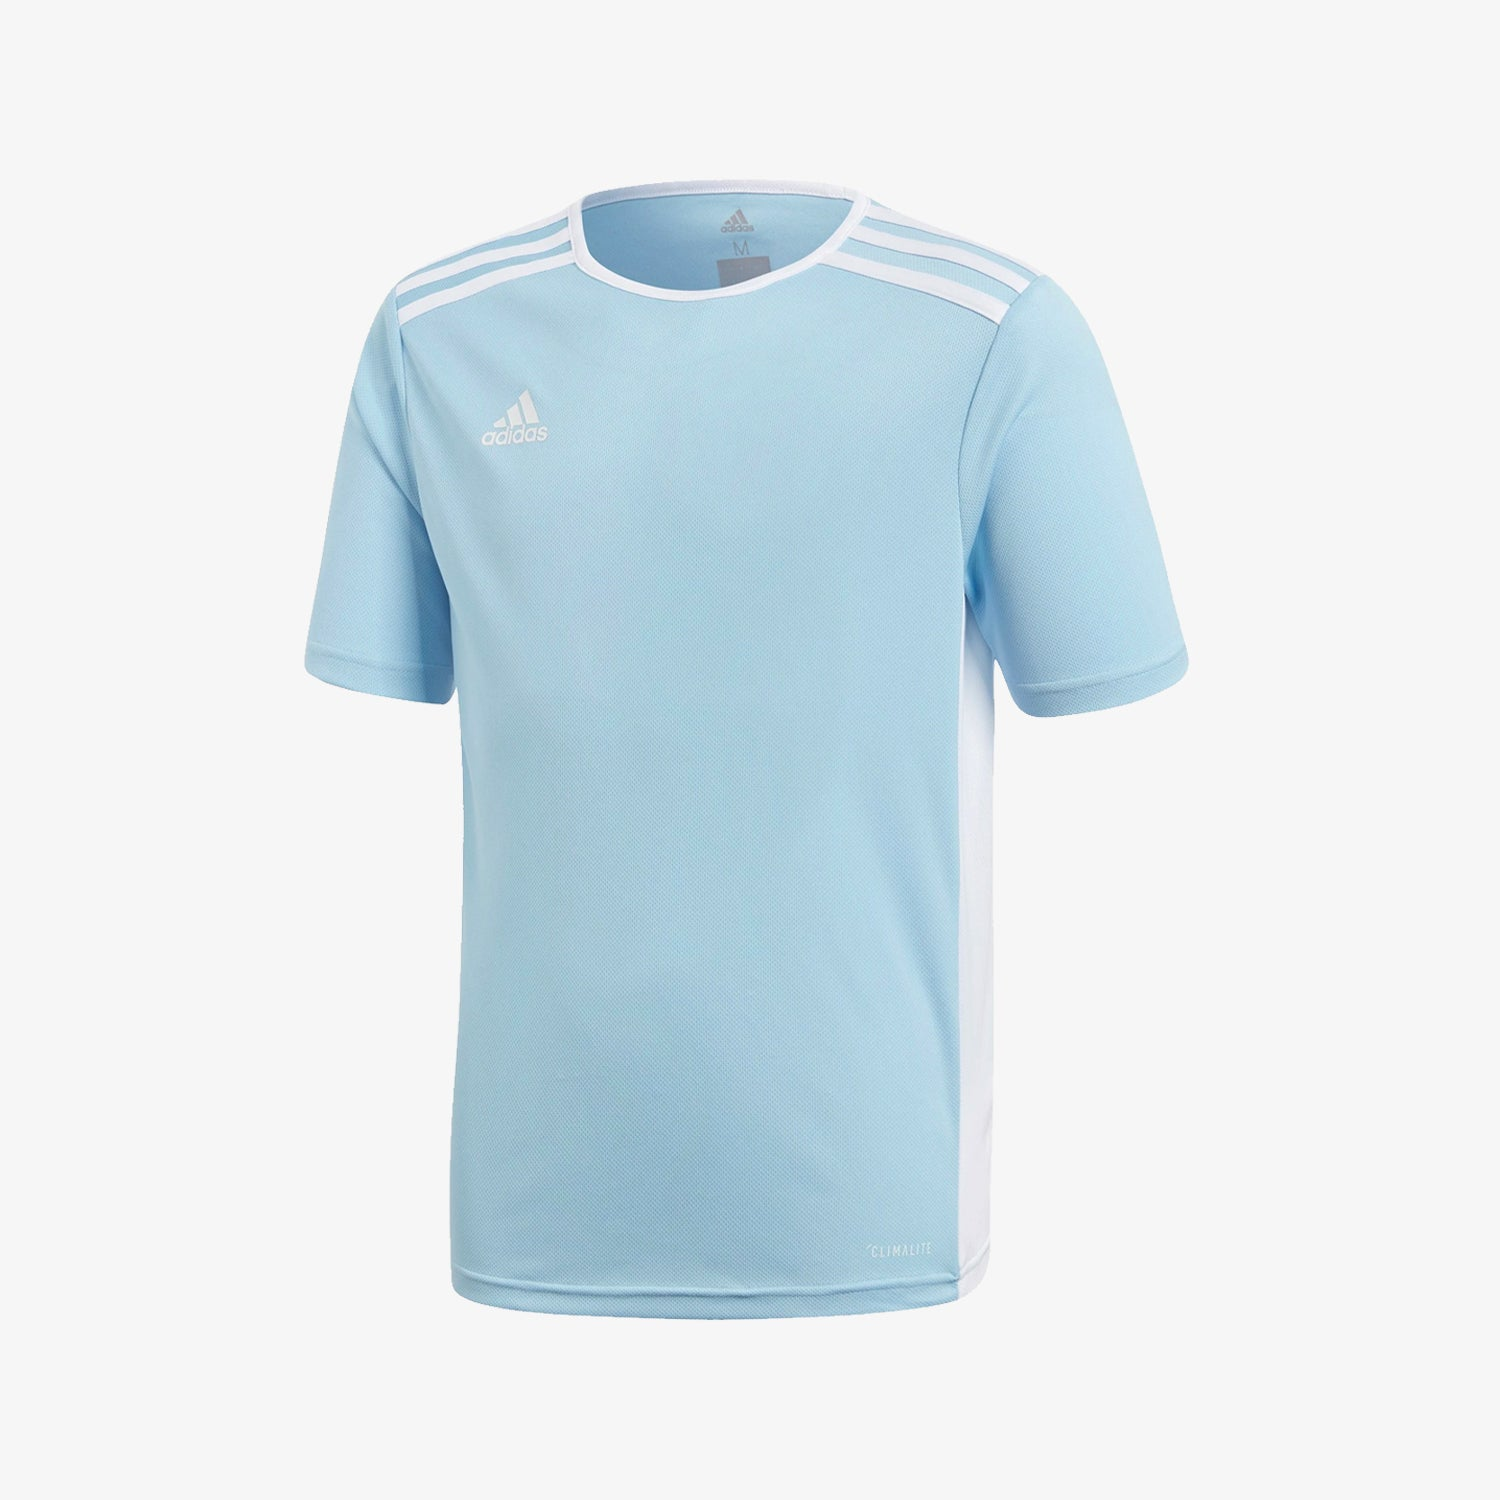 Youth Entrada 18 jersey - Clear Blue